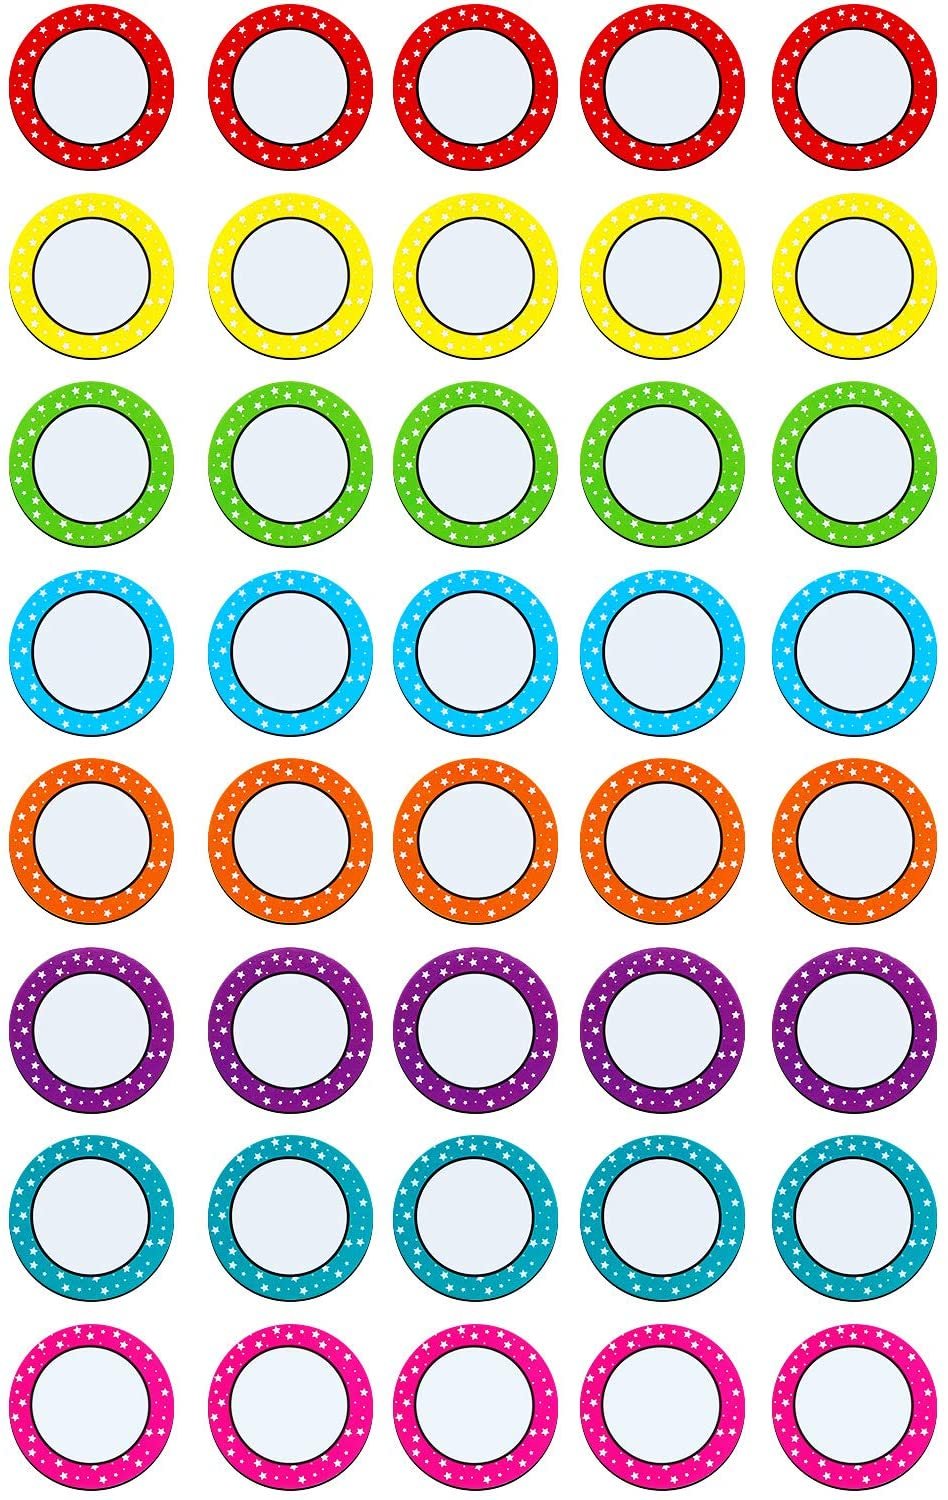 40 Pieces 2 Inch Numbers Magnetic Accents Round Whiteboard Magnets Colorful Fridge Magnets for School Office Home Supplies (Color Set 1)